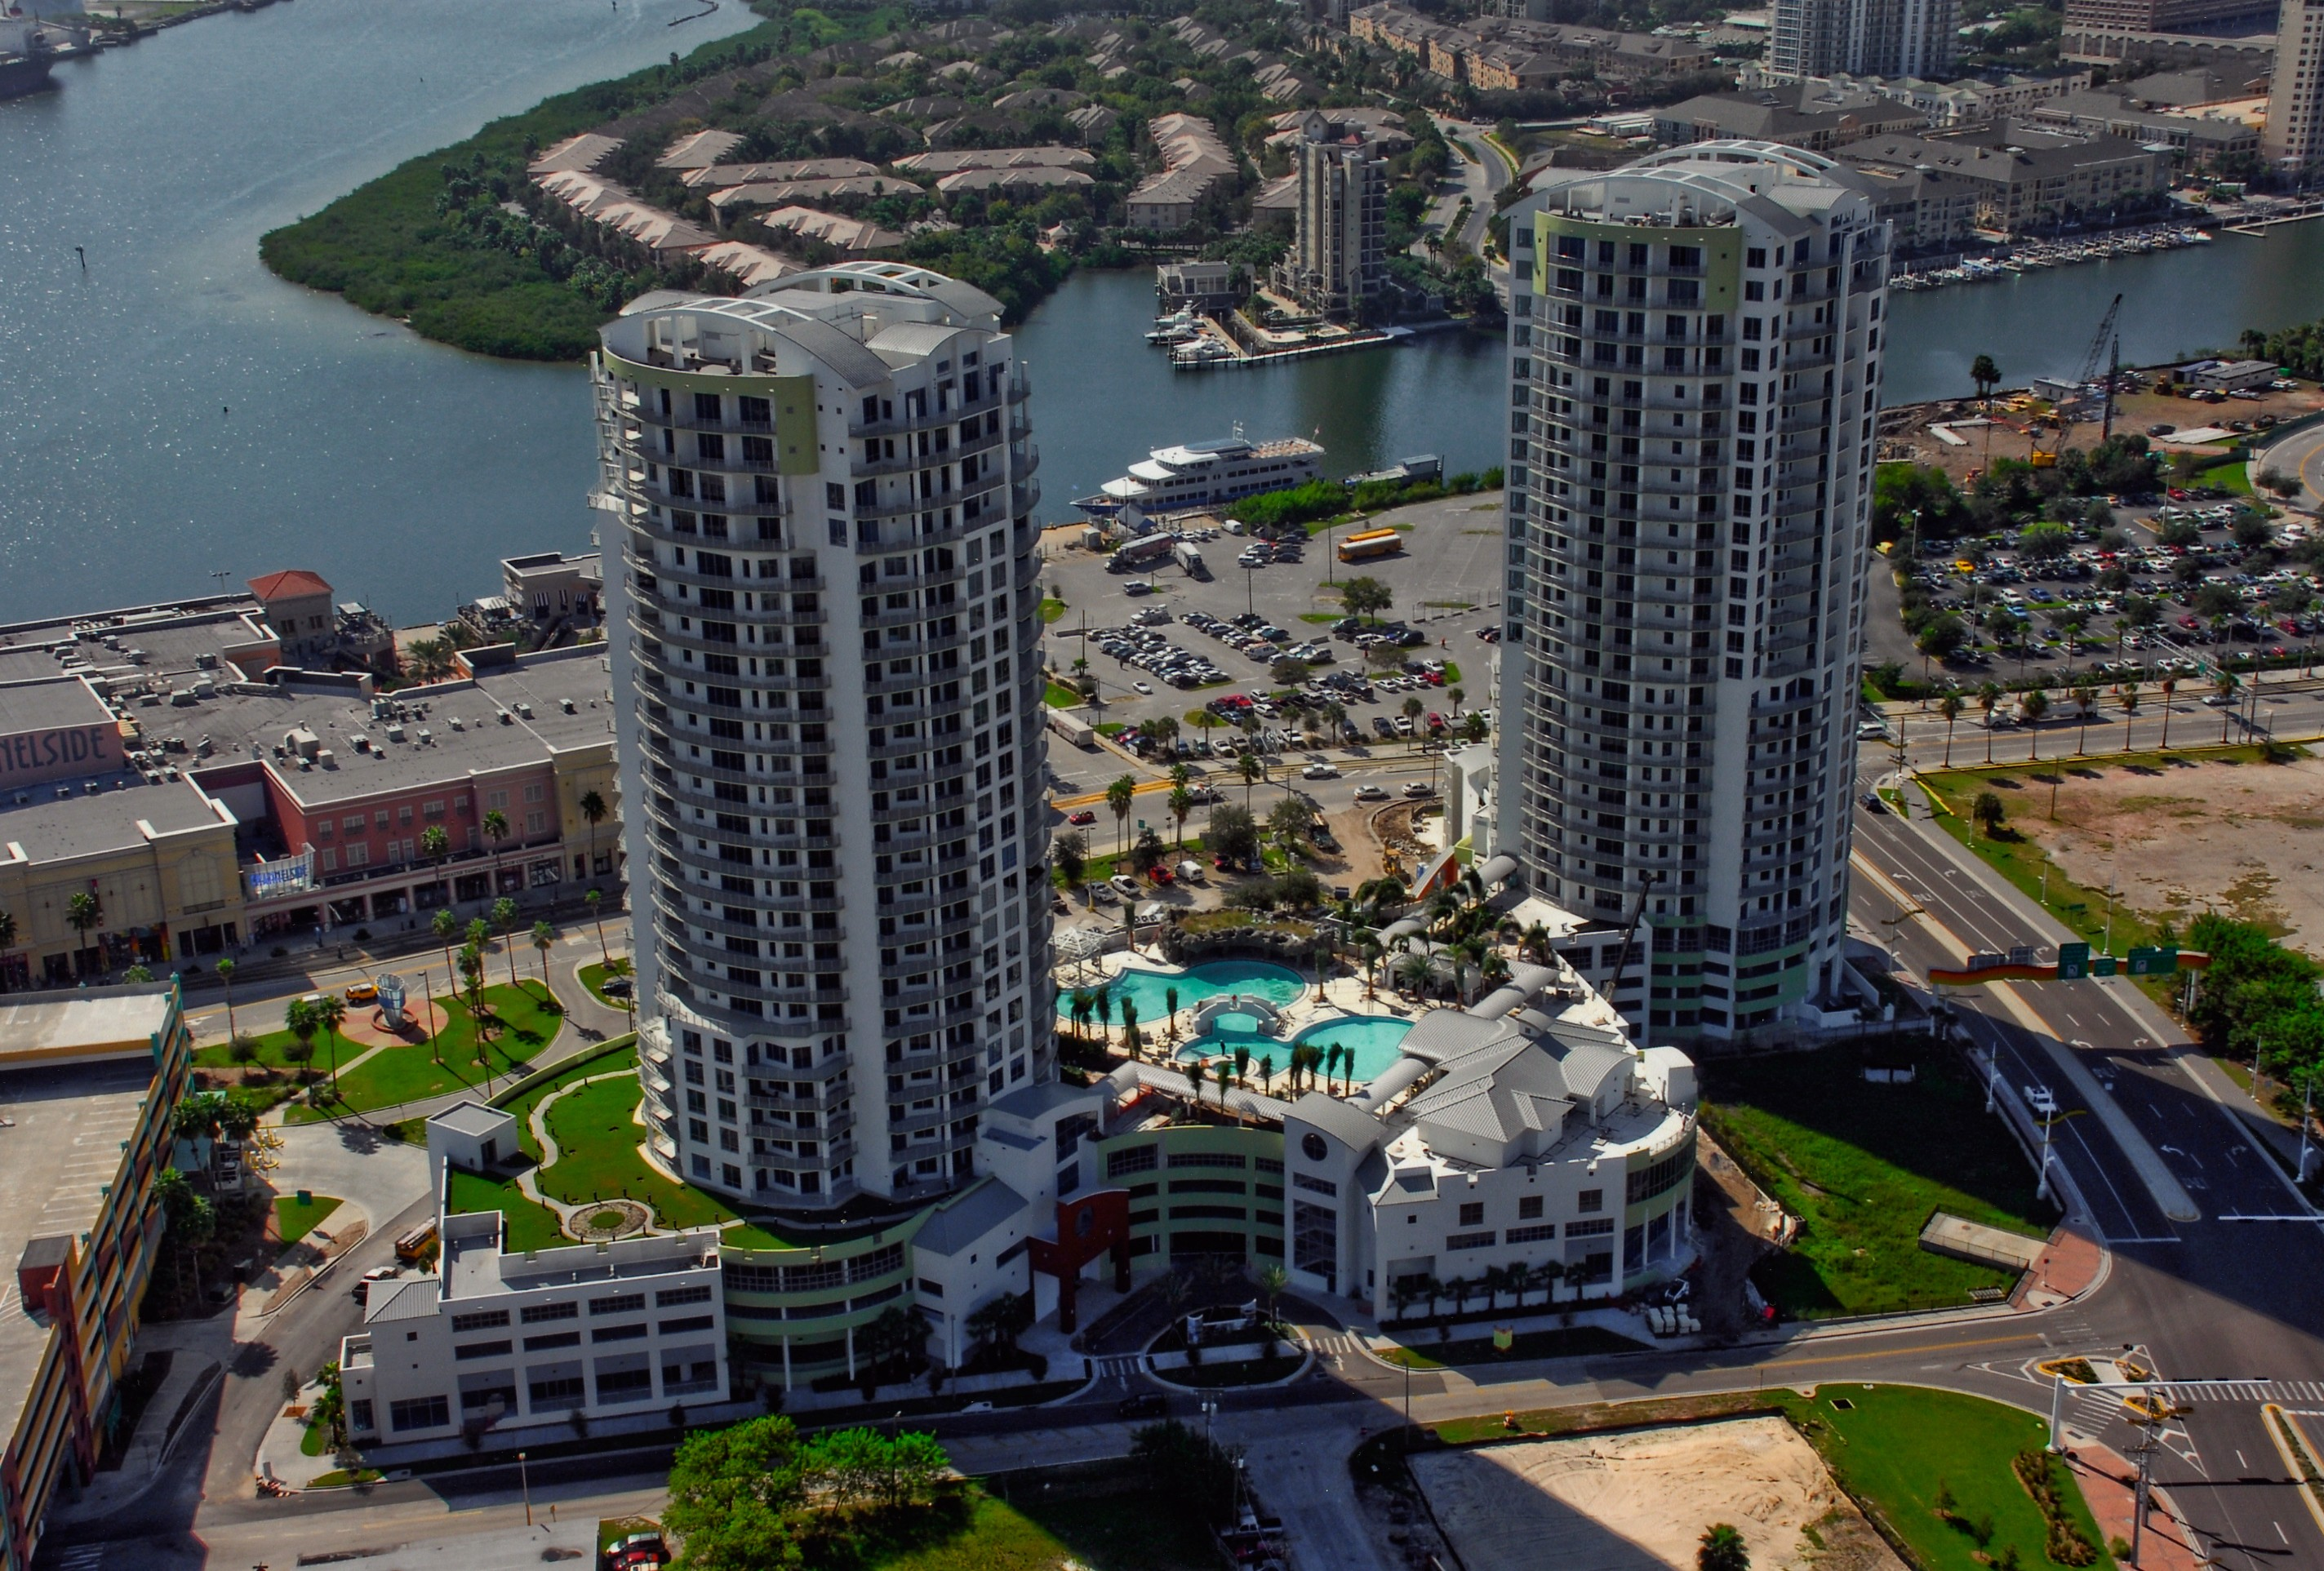 JMC Realty Takes Over Sales and Marketing At Towers of Channelside